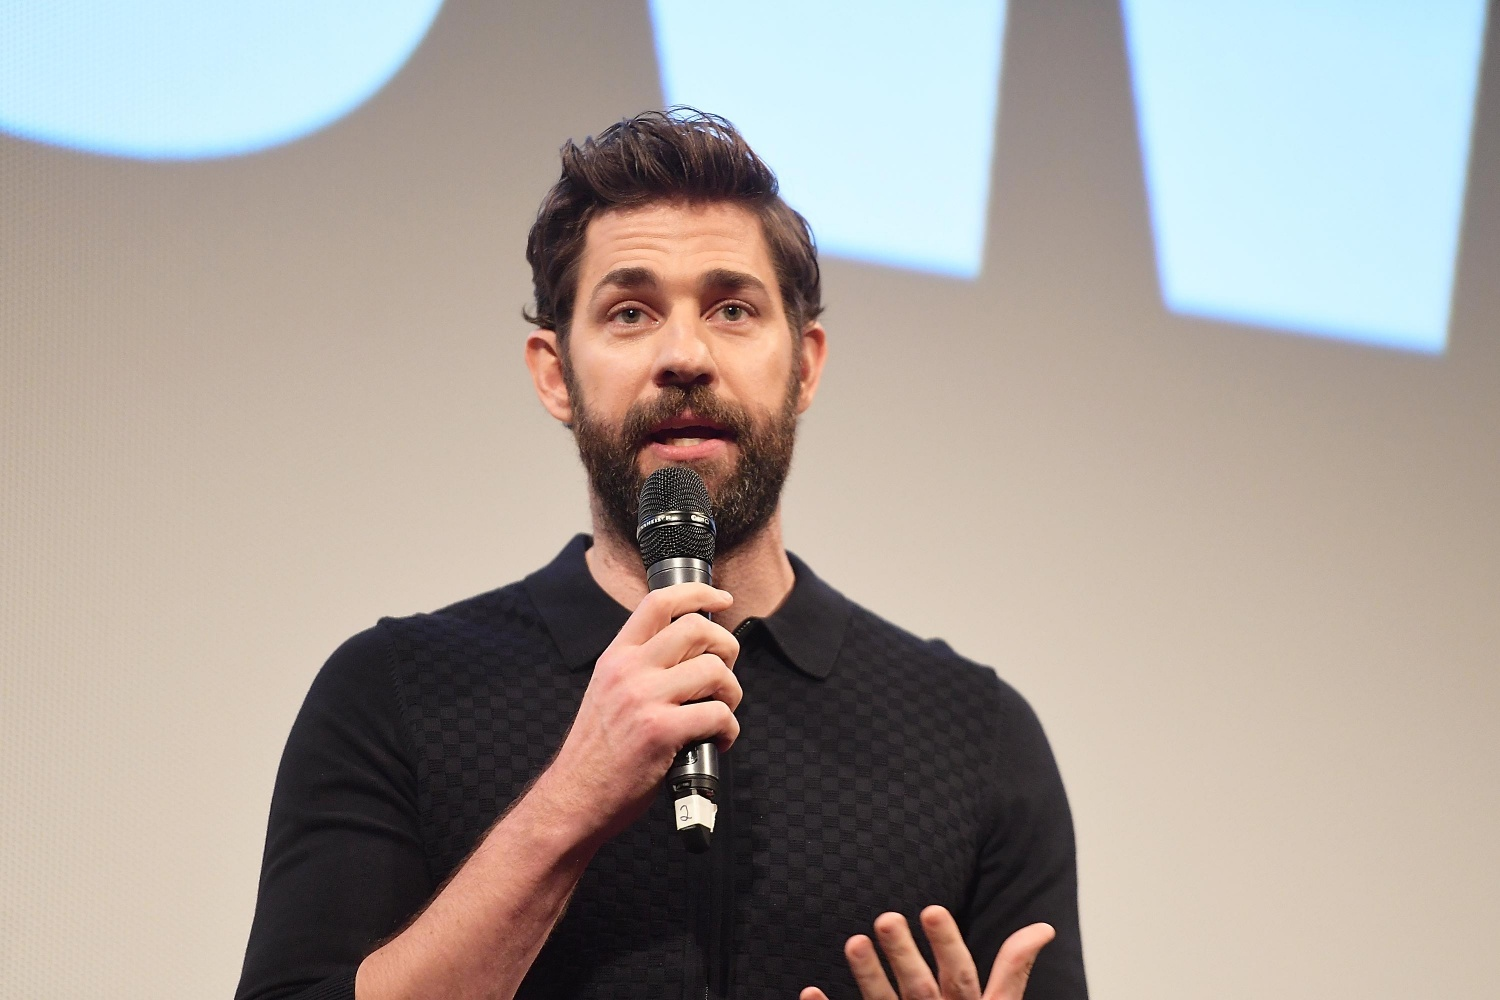 John Krasinski Is Going to Mars for His Next Movie